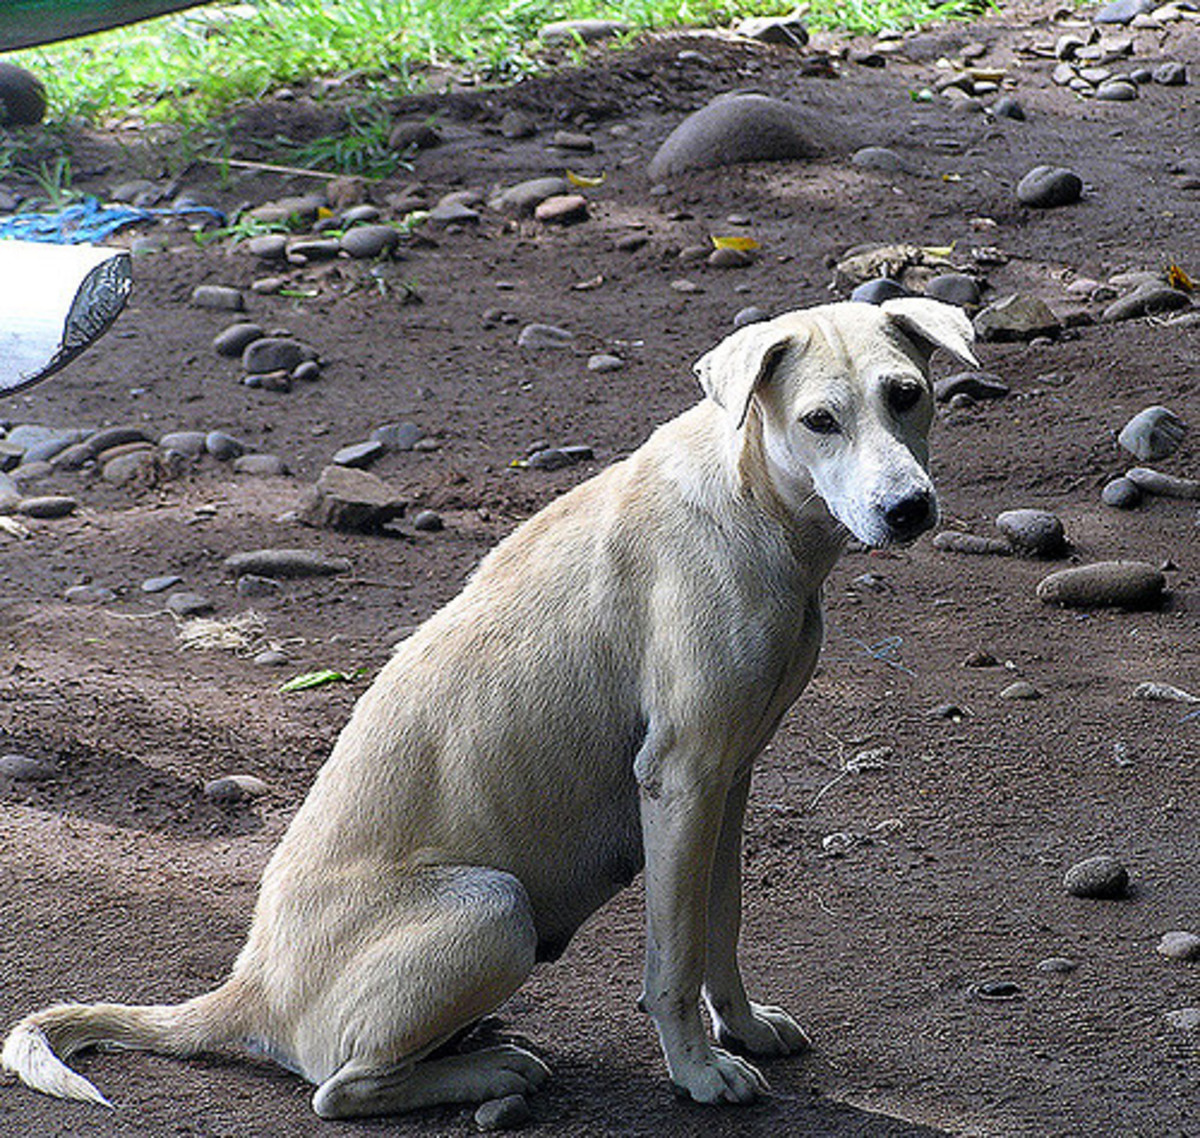 Bali dogs may look cute, but refrain from petting strays- they might bite or have diseases.